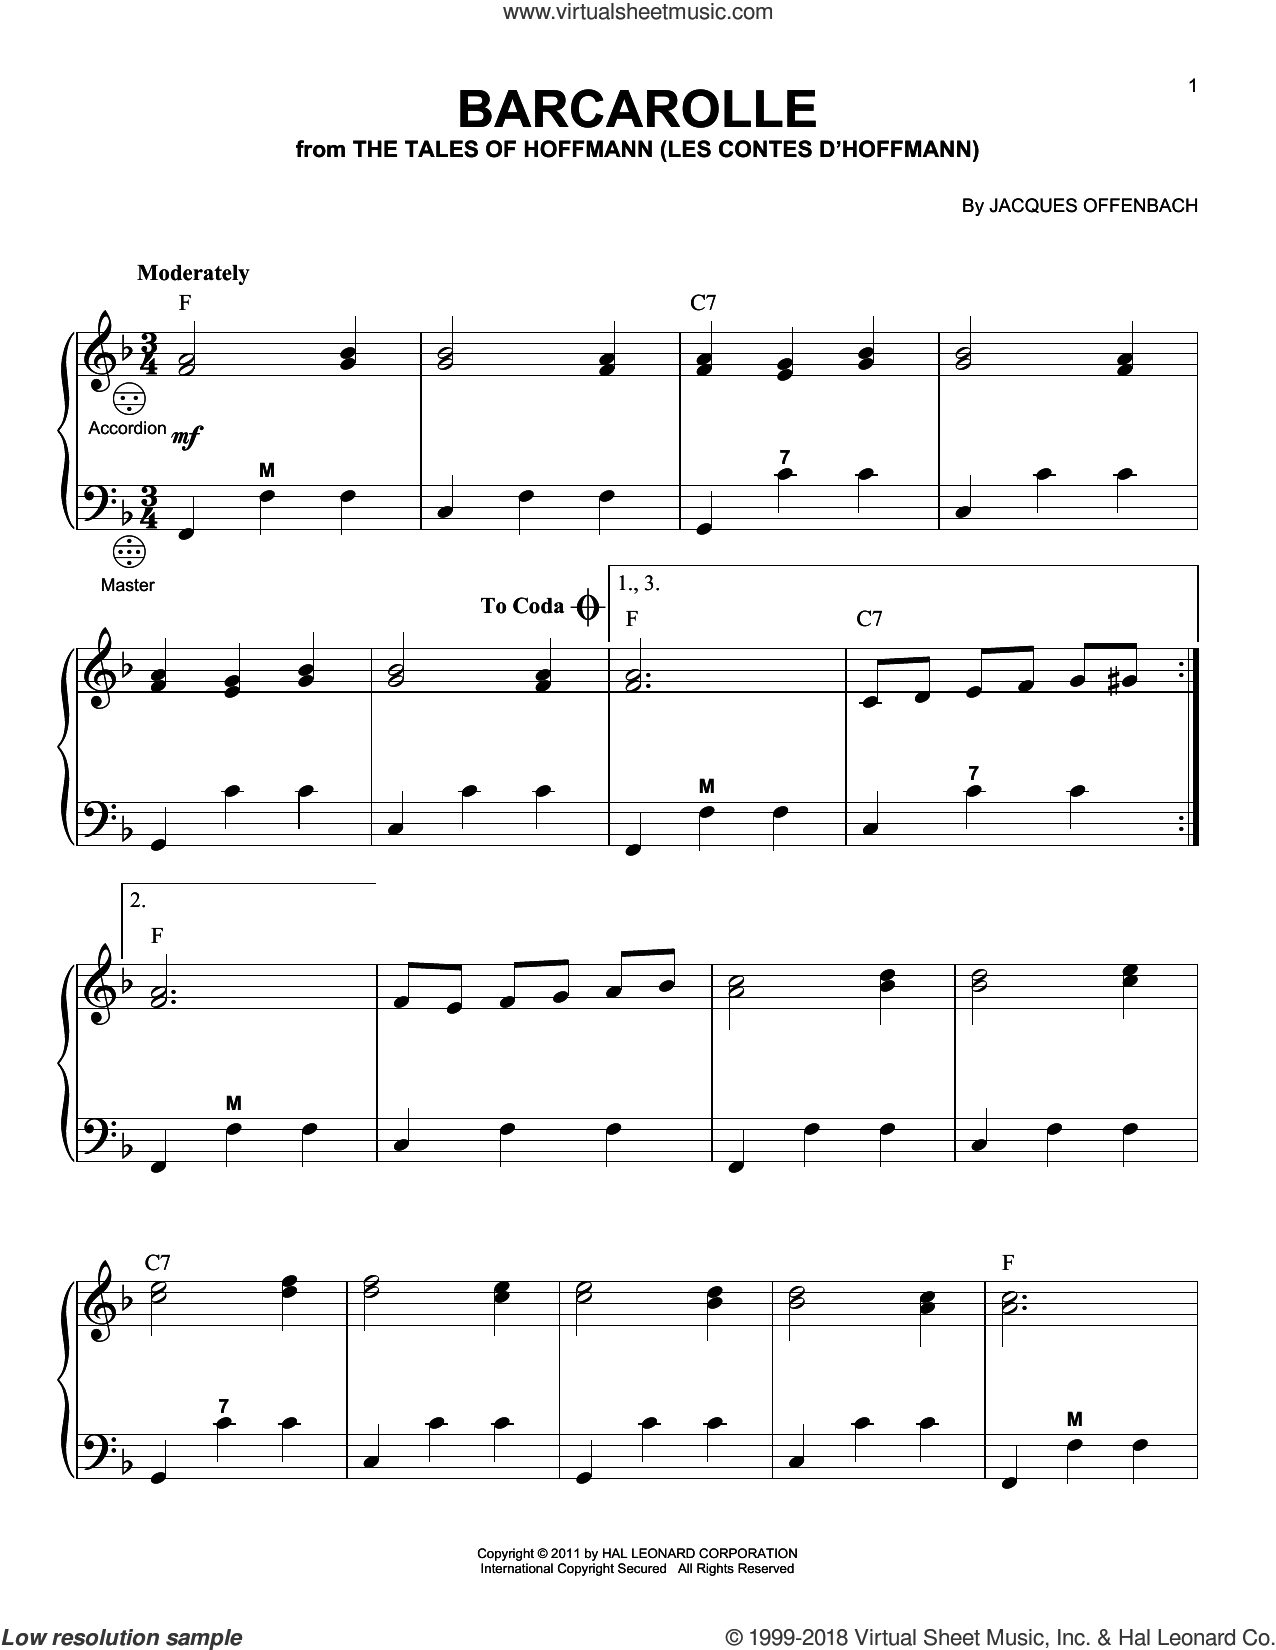 Barcarolle sheet music for accordion by Jacques Offenbach